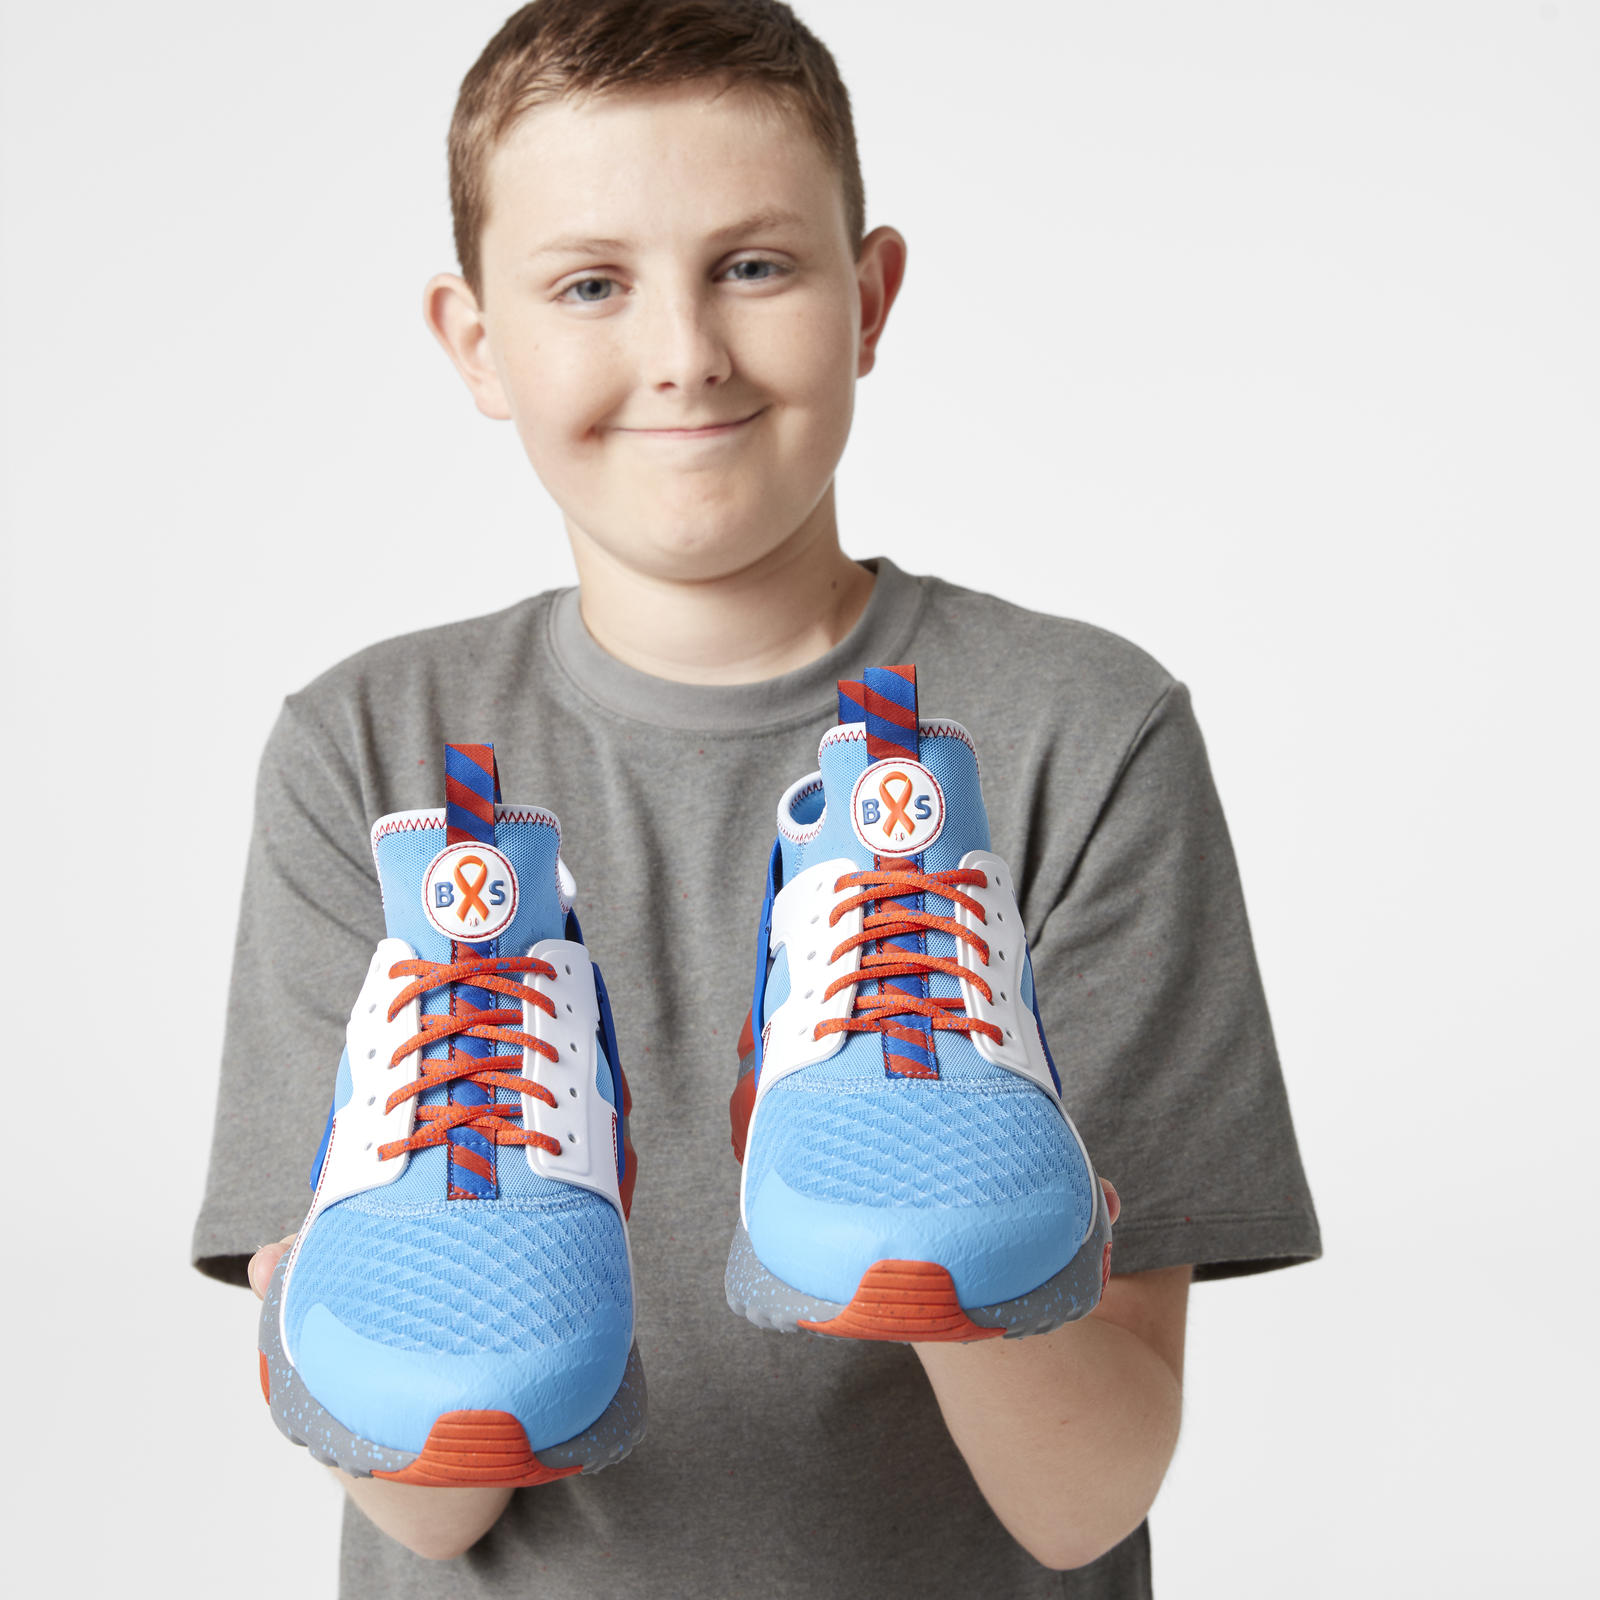 What the Doernbecher Freestyle Program Means to the Sneaker Community  28